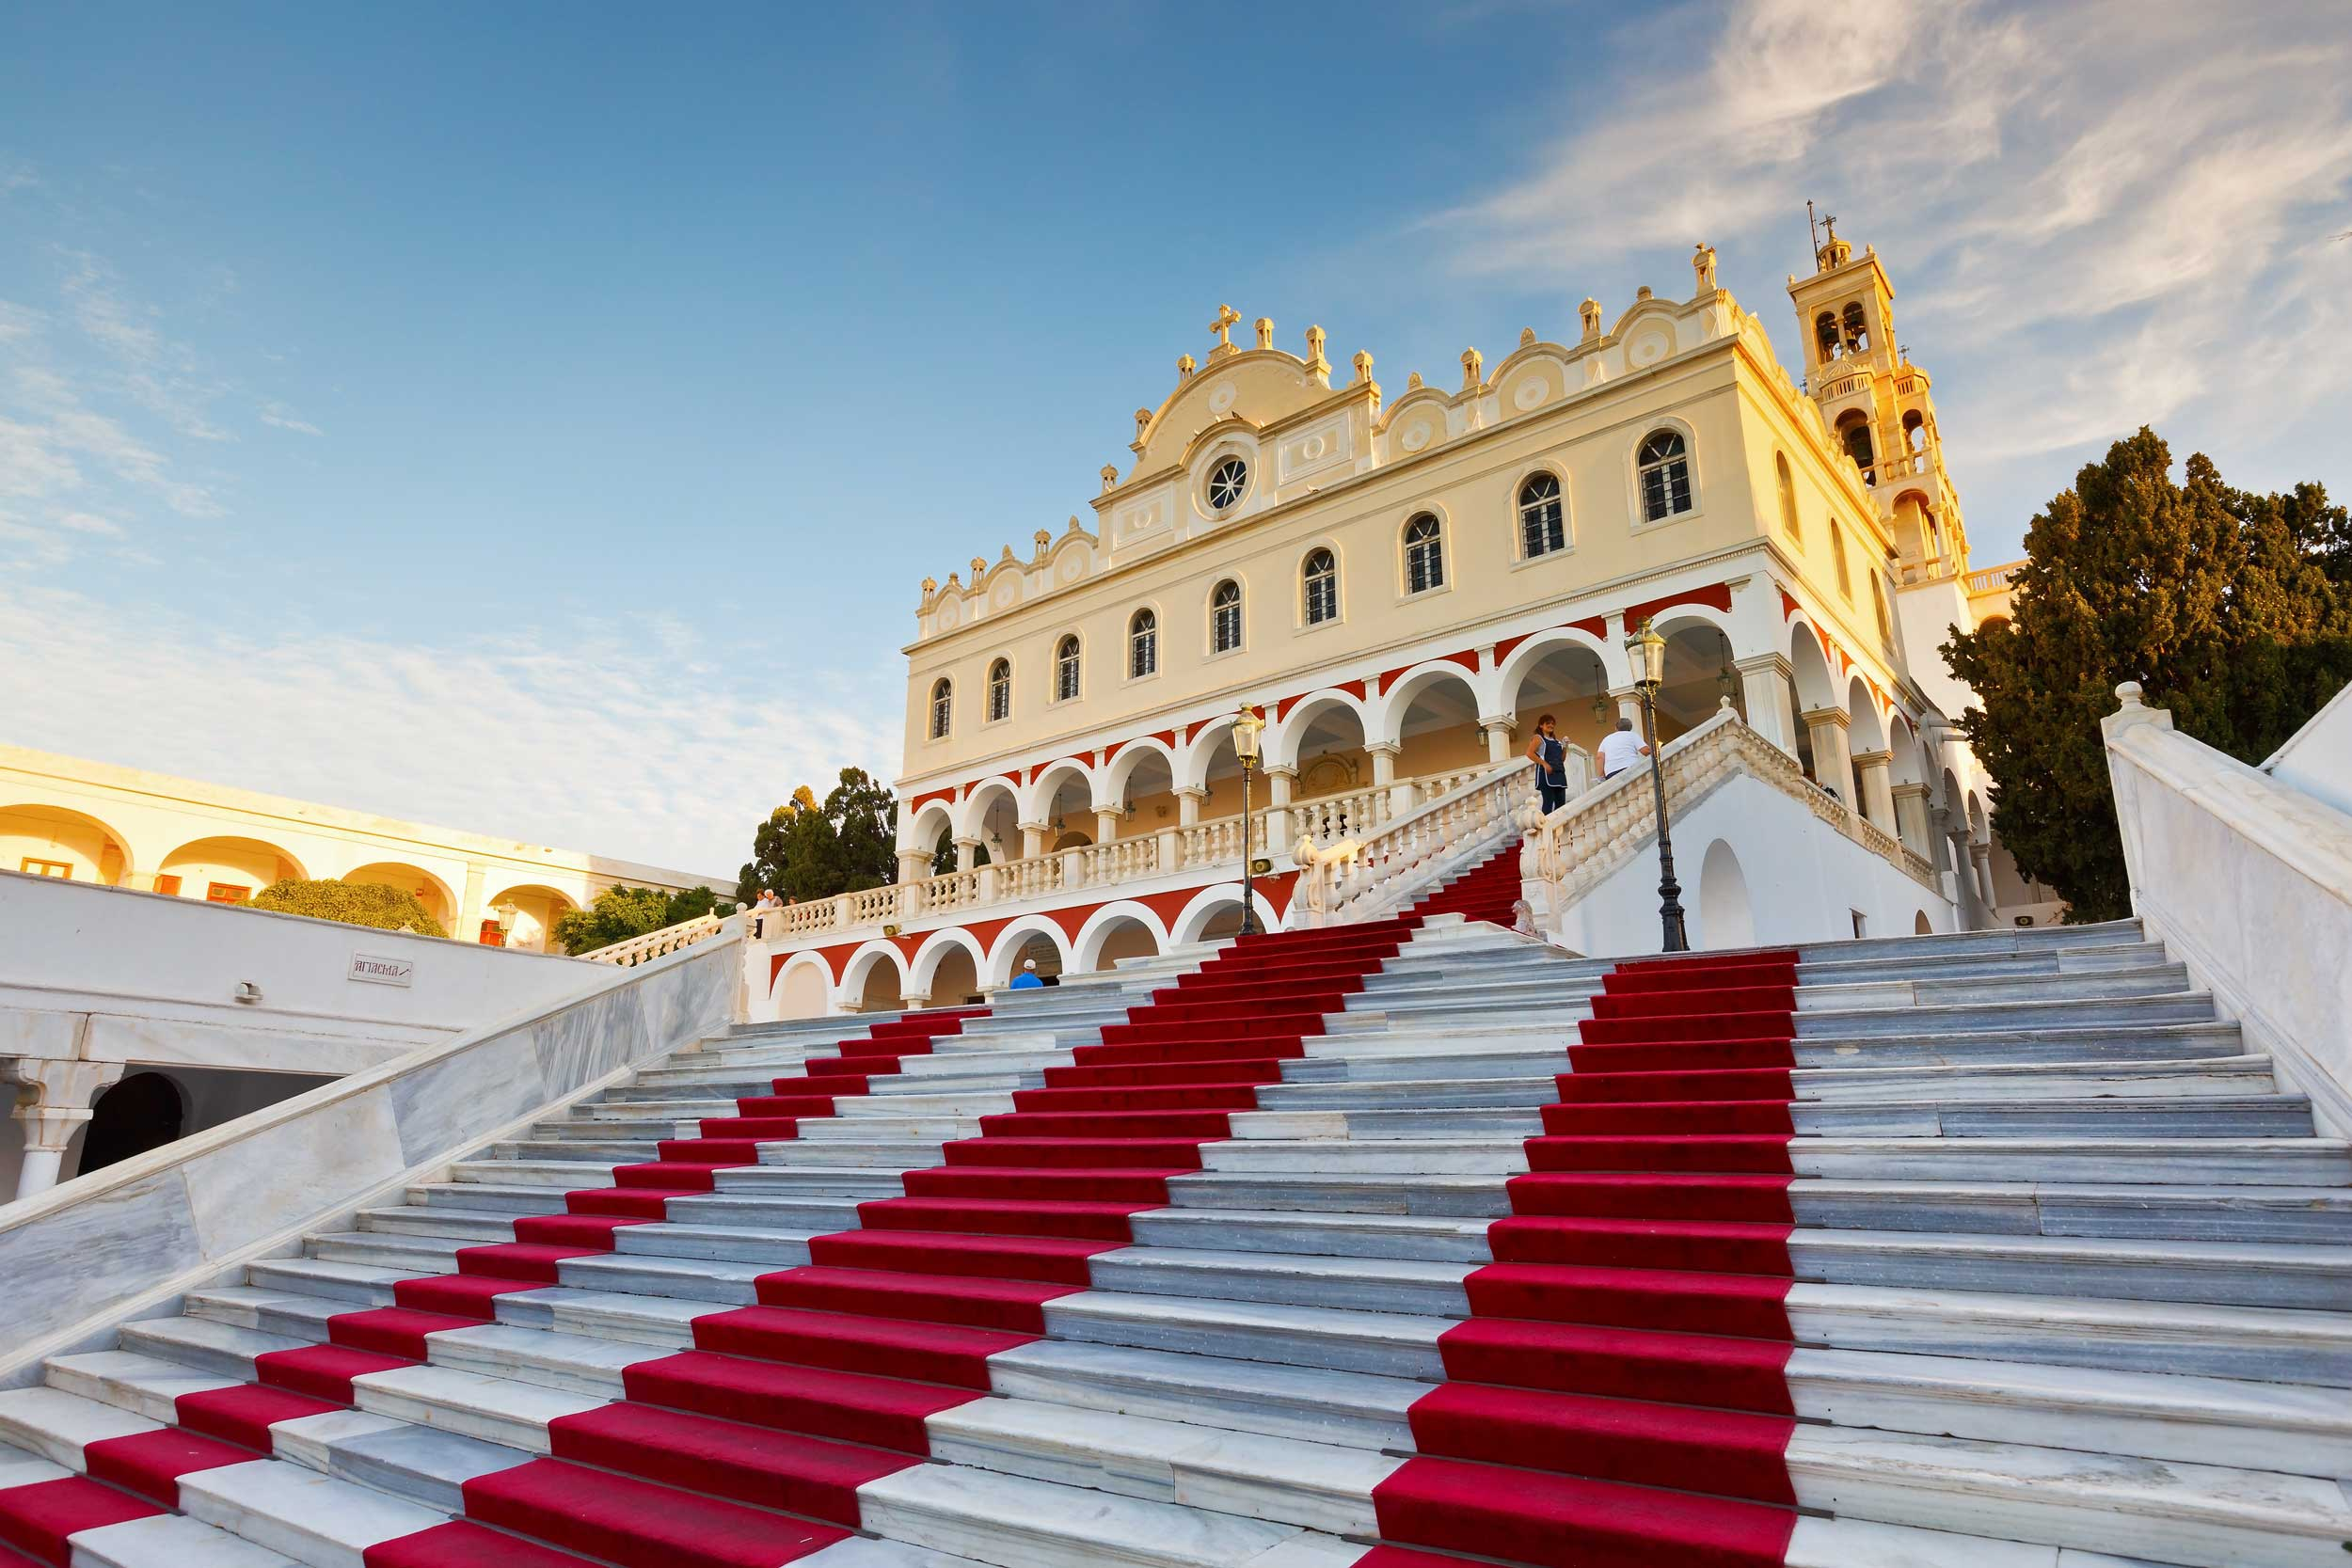 An imposing colonnaded building at the top of wide marble stairs lined with red carpets, Greece